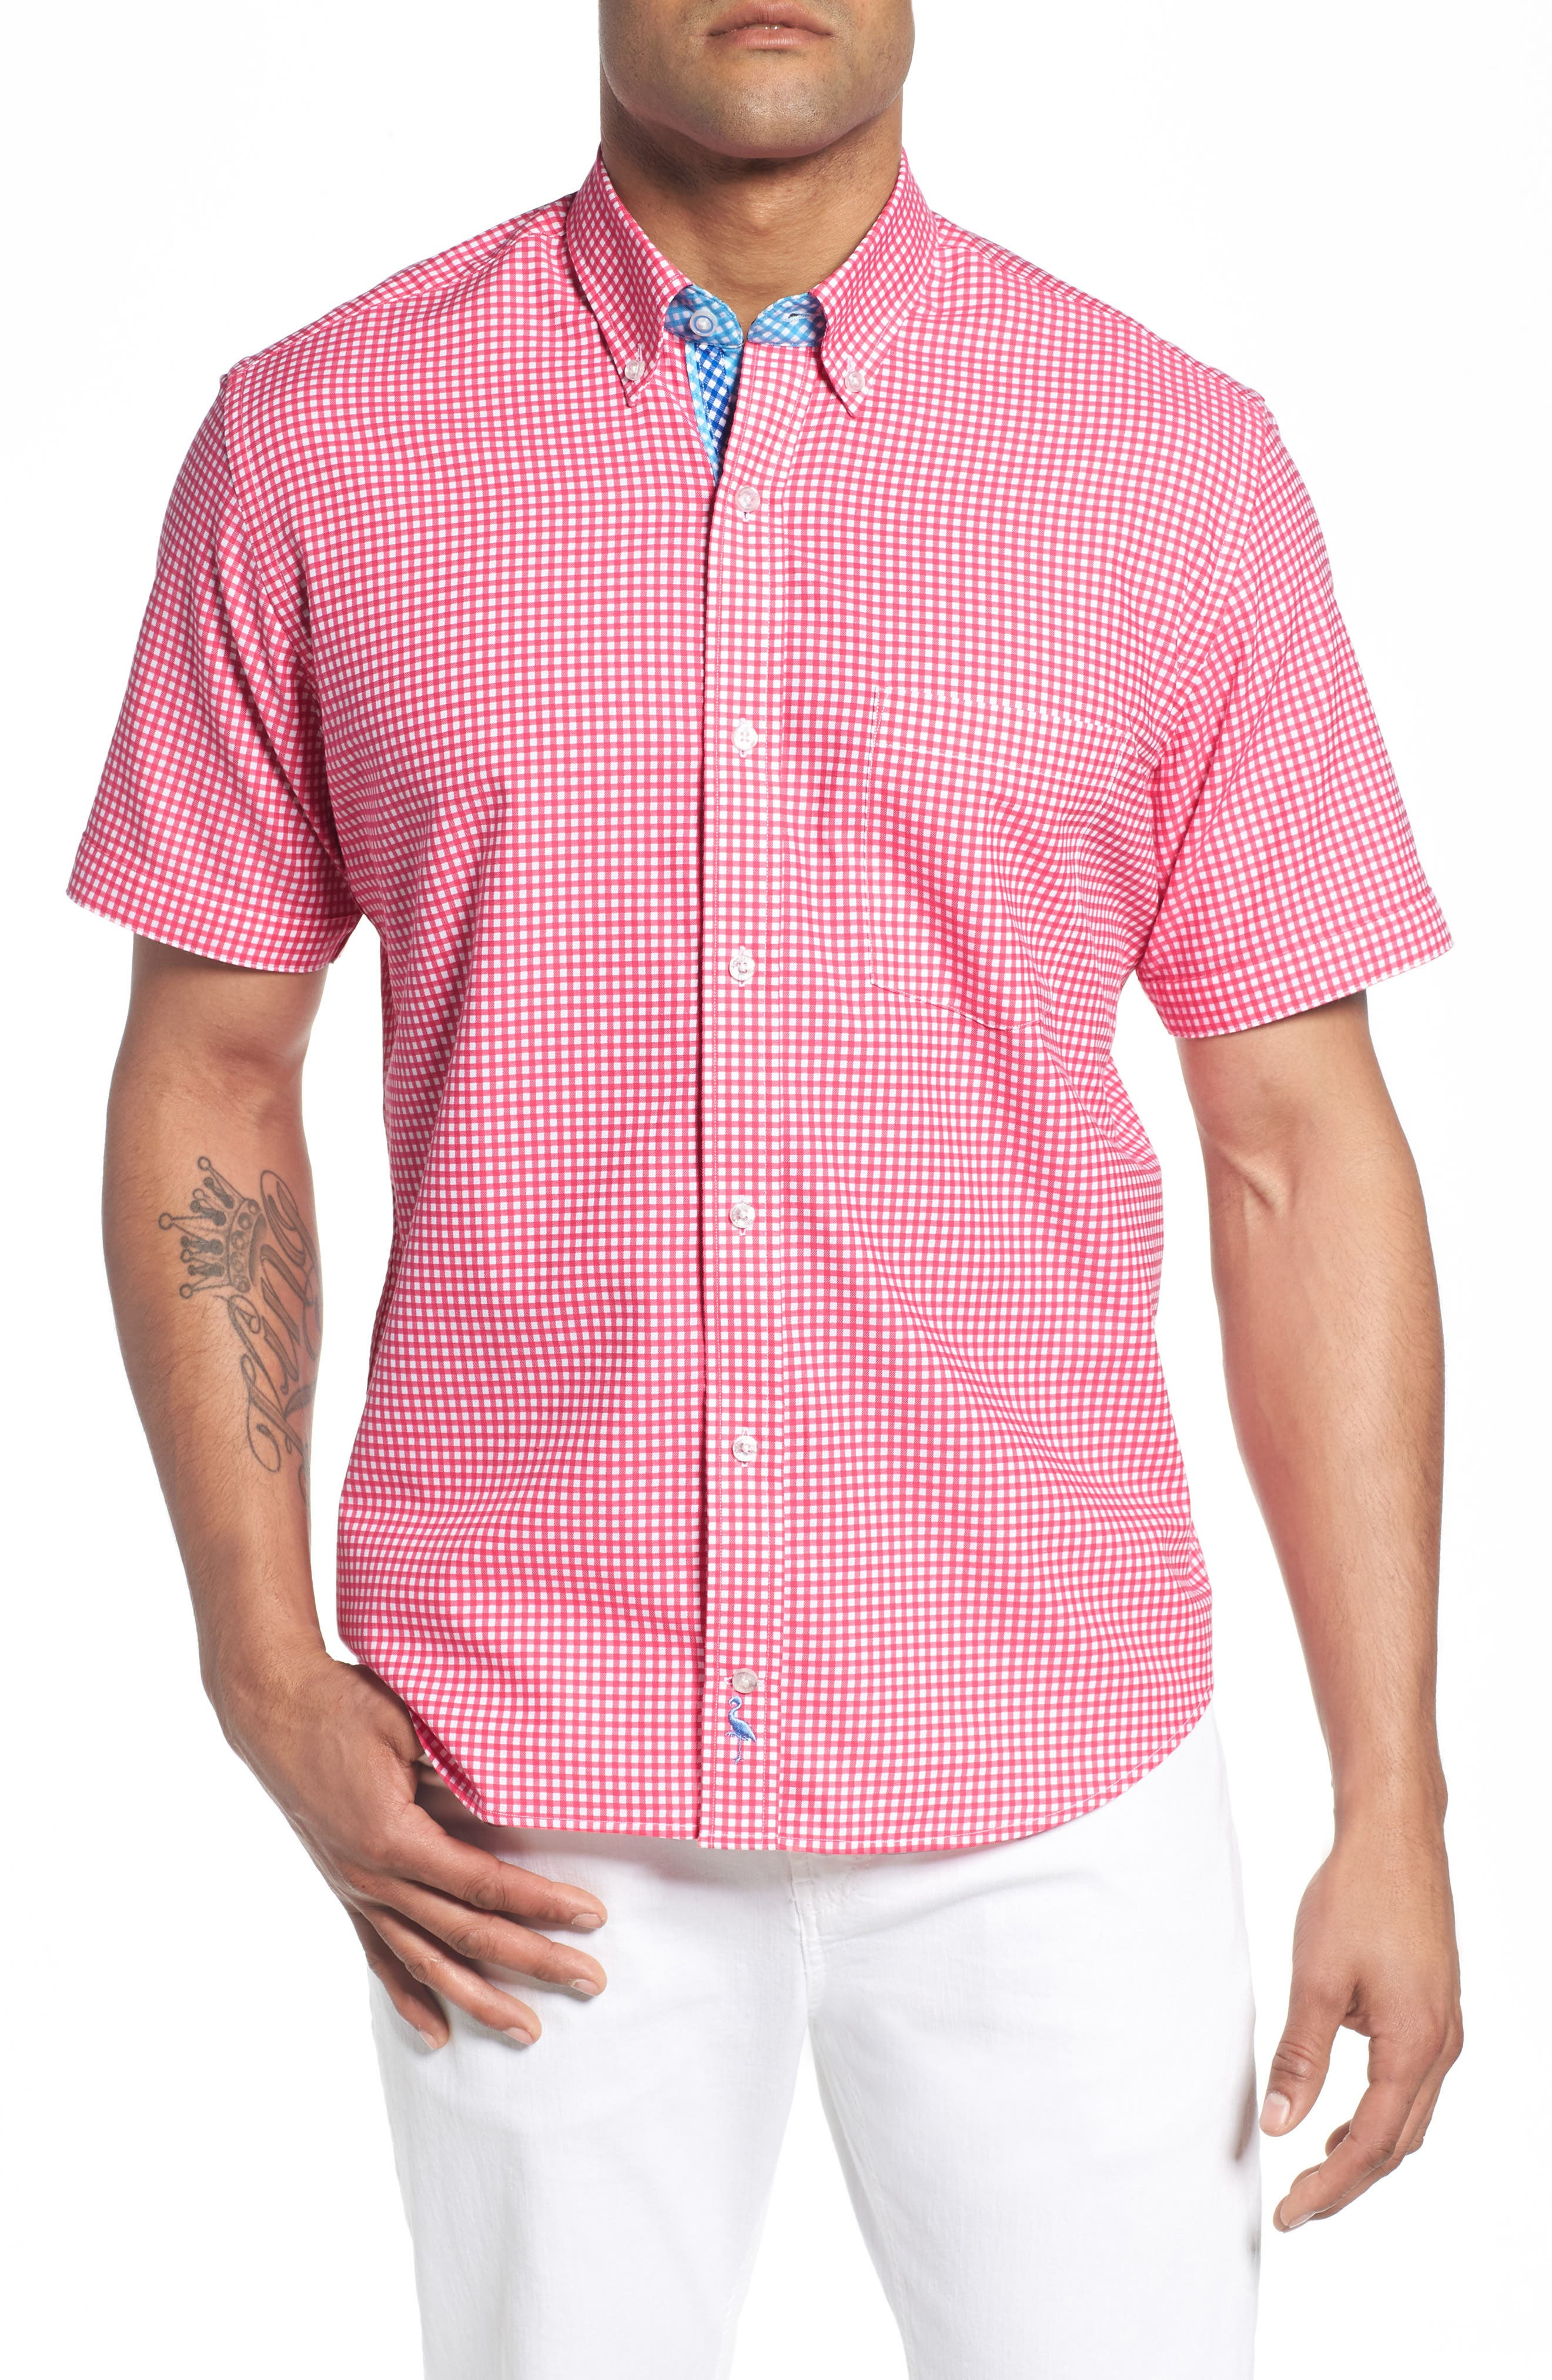 Aden Regular Fit Sport Shirt,                         Main,                         color, 950